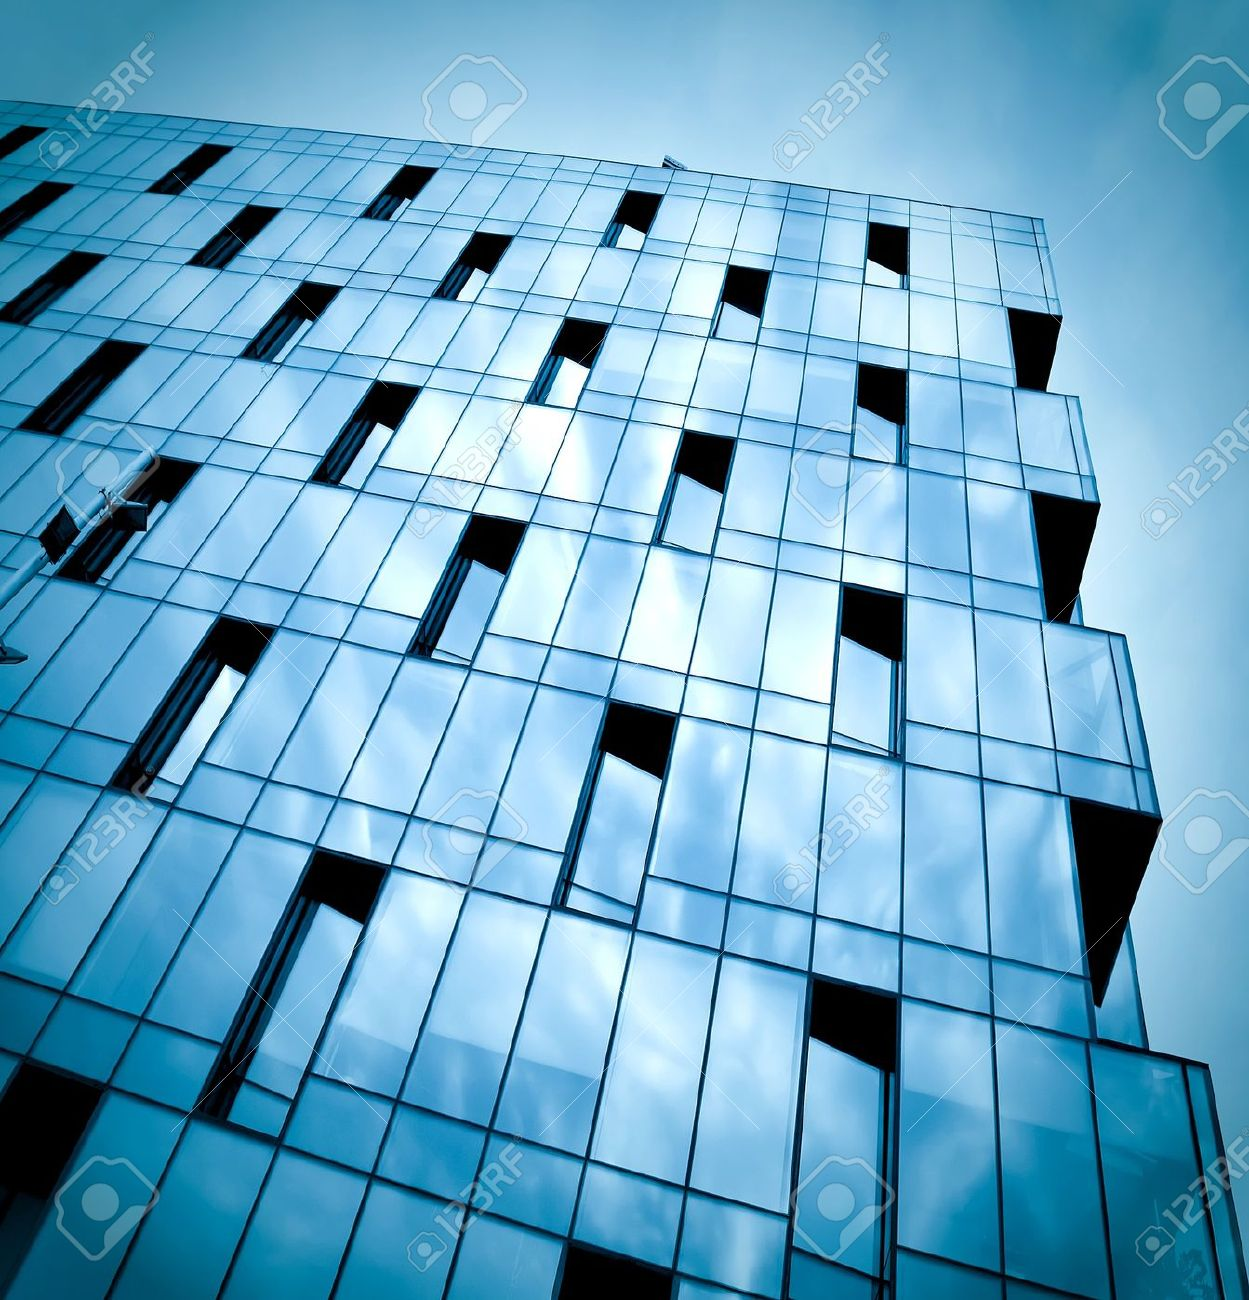 Dark Texture Of Glass Building At Night Stock Photo Picture And